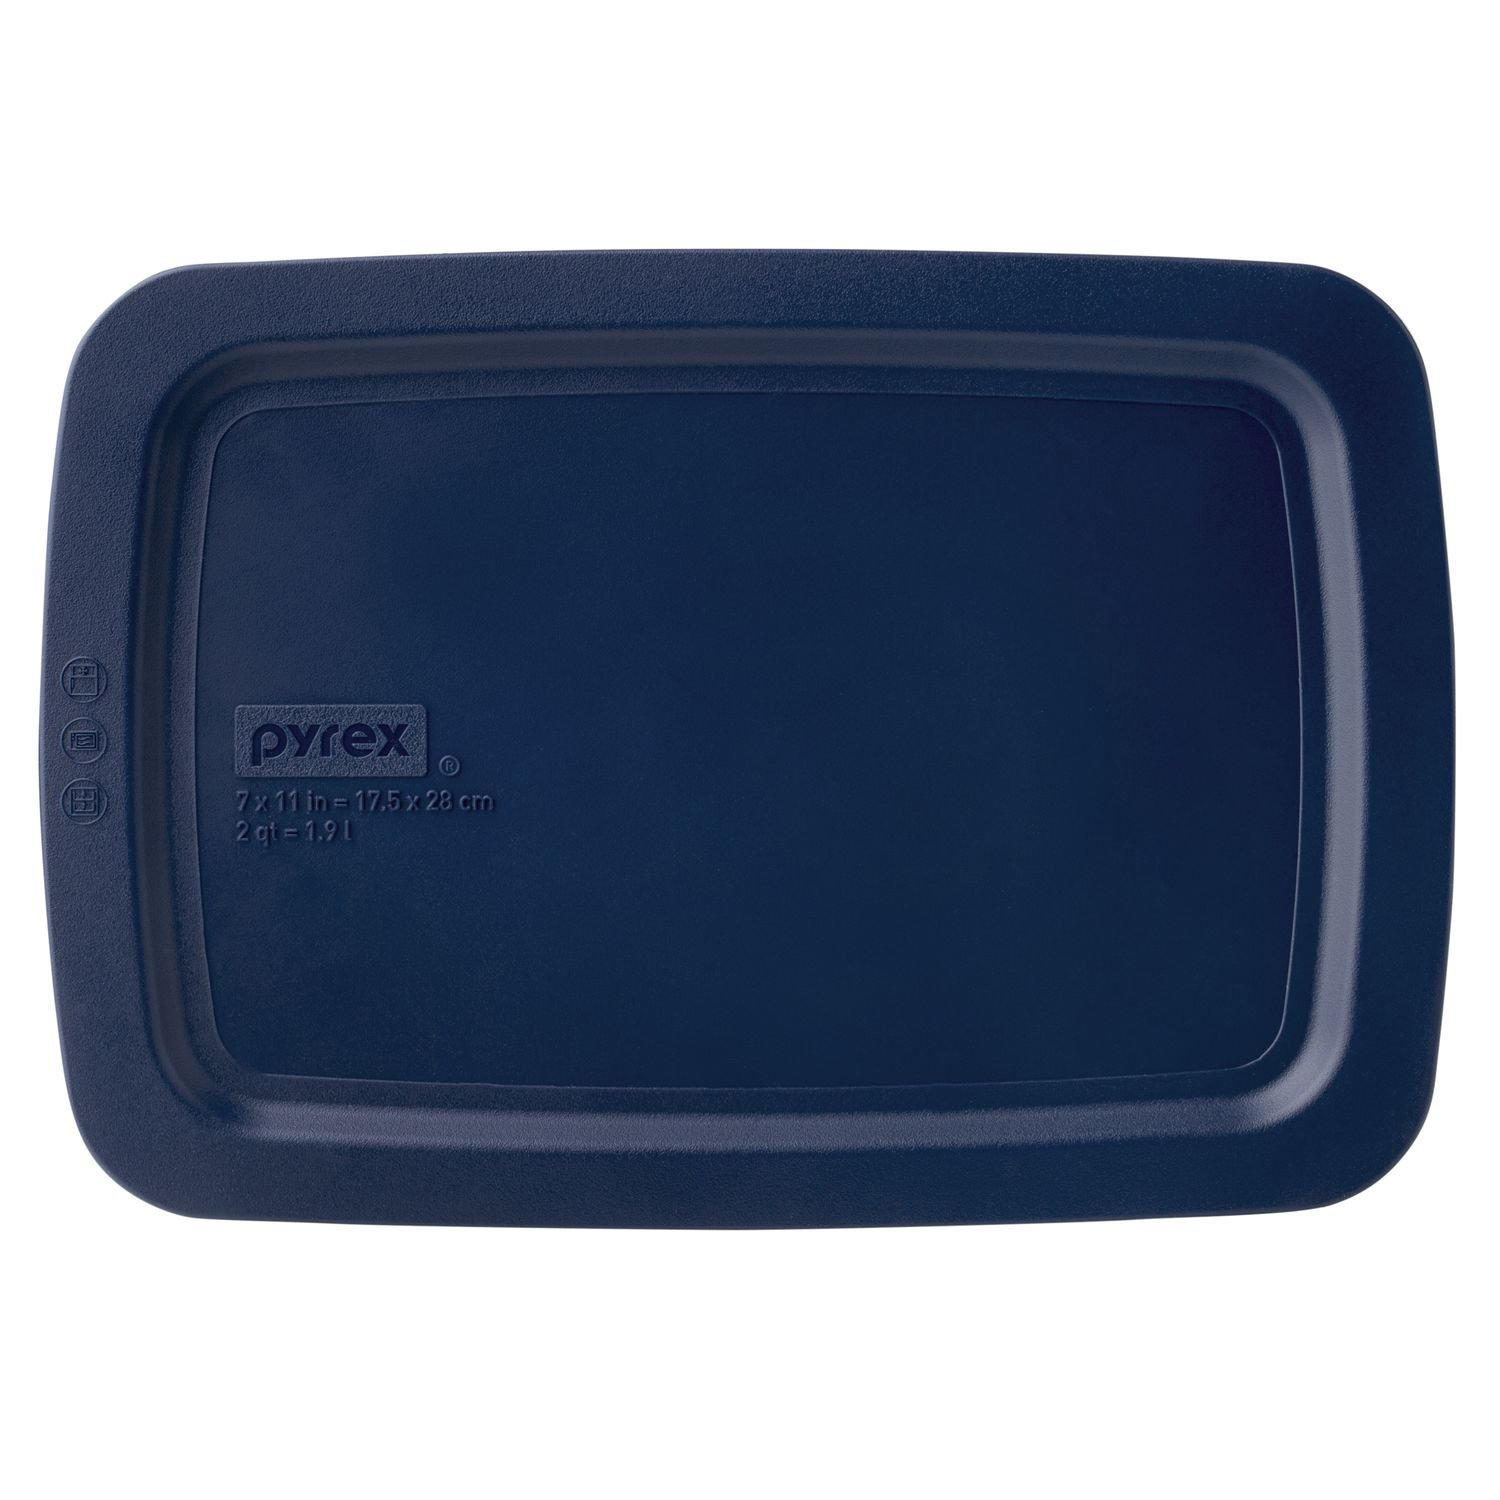 Pyrex Easy Grab 2-qt Oblong Storage Plastic Lid, Blue